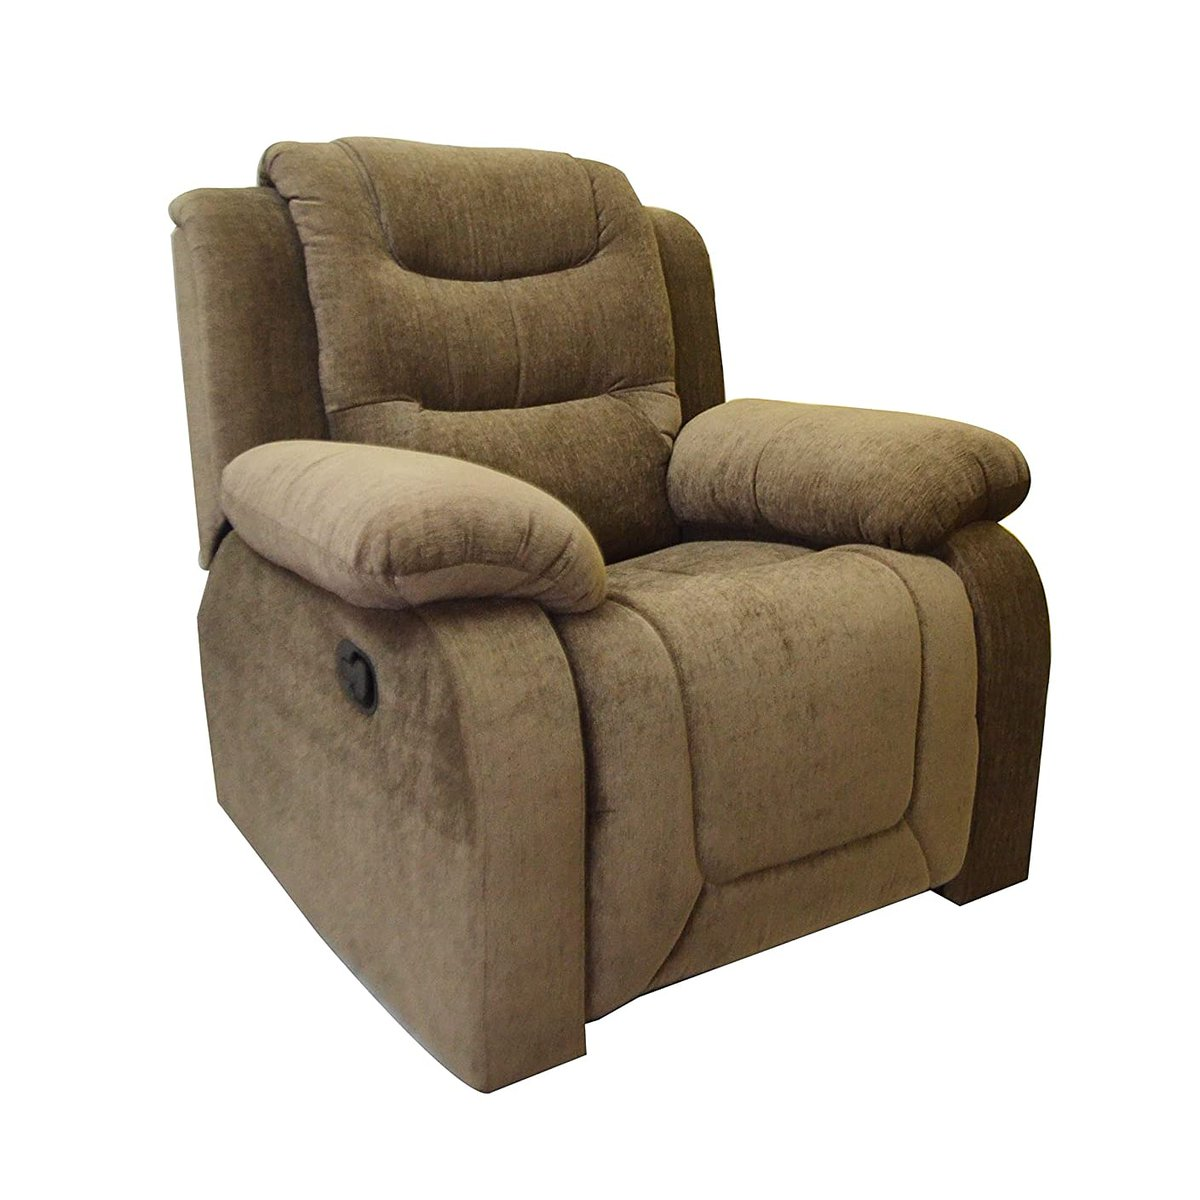 Recliner chair for Home link below  http://www.bestbuyingdeal.in/2020/04/20/best-5-recliner-chairs-buy-in-affordable-prices-online-india-2020/…  #chair #chairs #chairforhealthyback #chairforhealth #restchair #chairfornewoffice #chairforoffice #designerchair #reclinerchair #reclinerchairspic.twitter.com/EOV6VctIgv